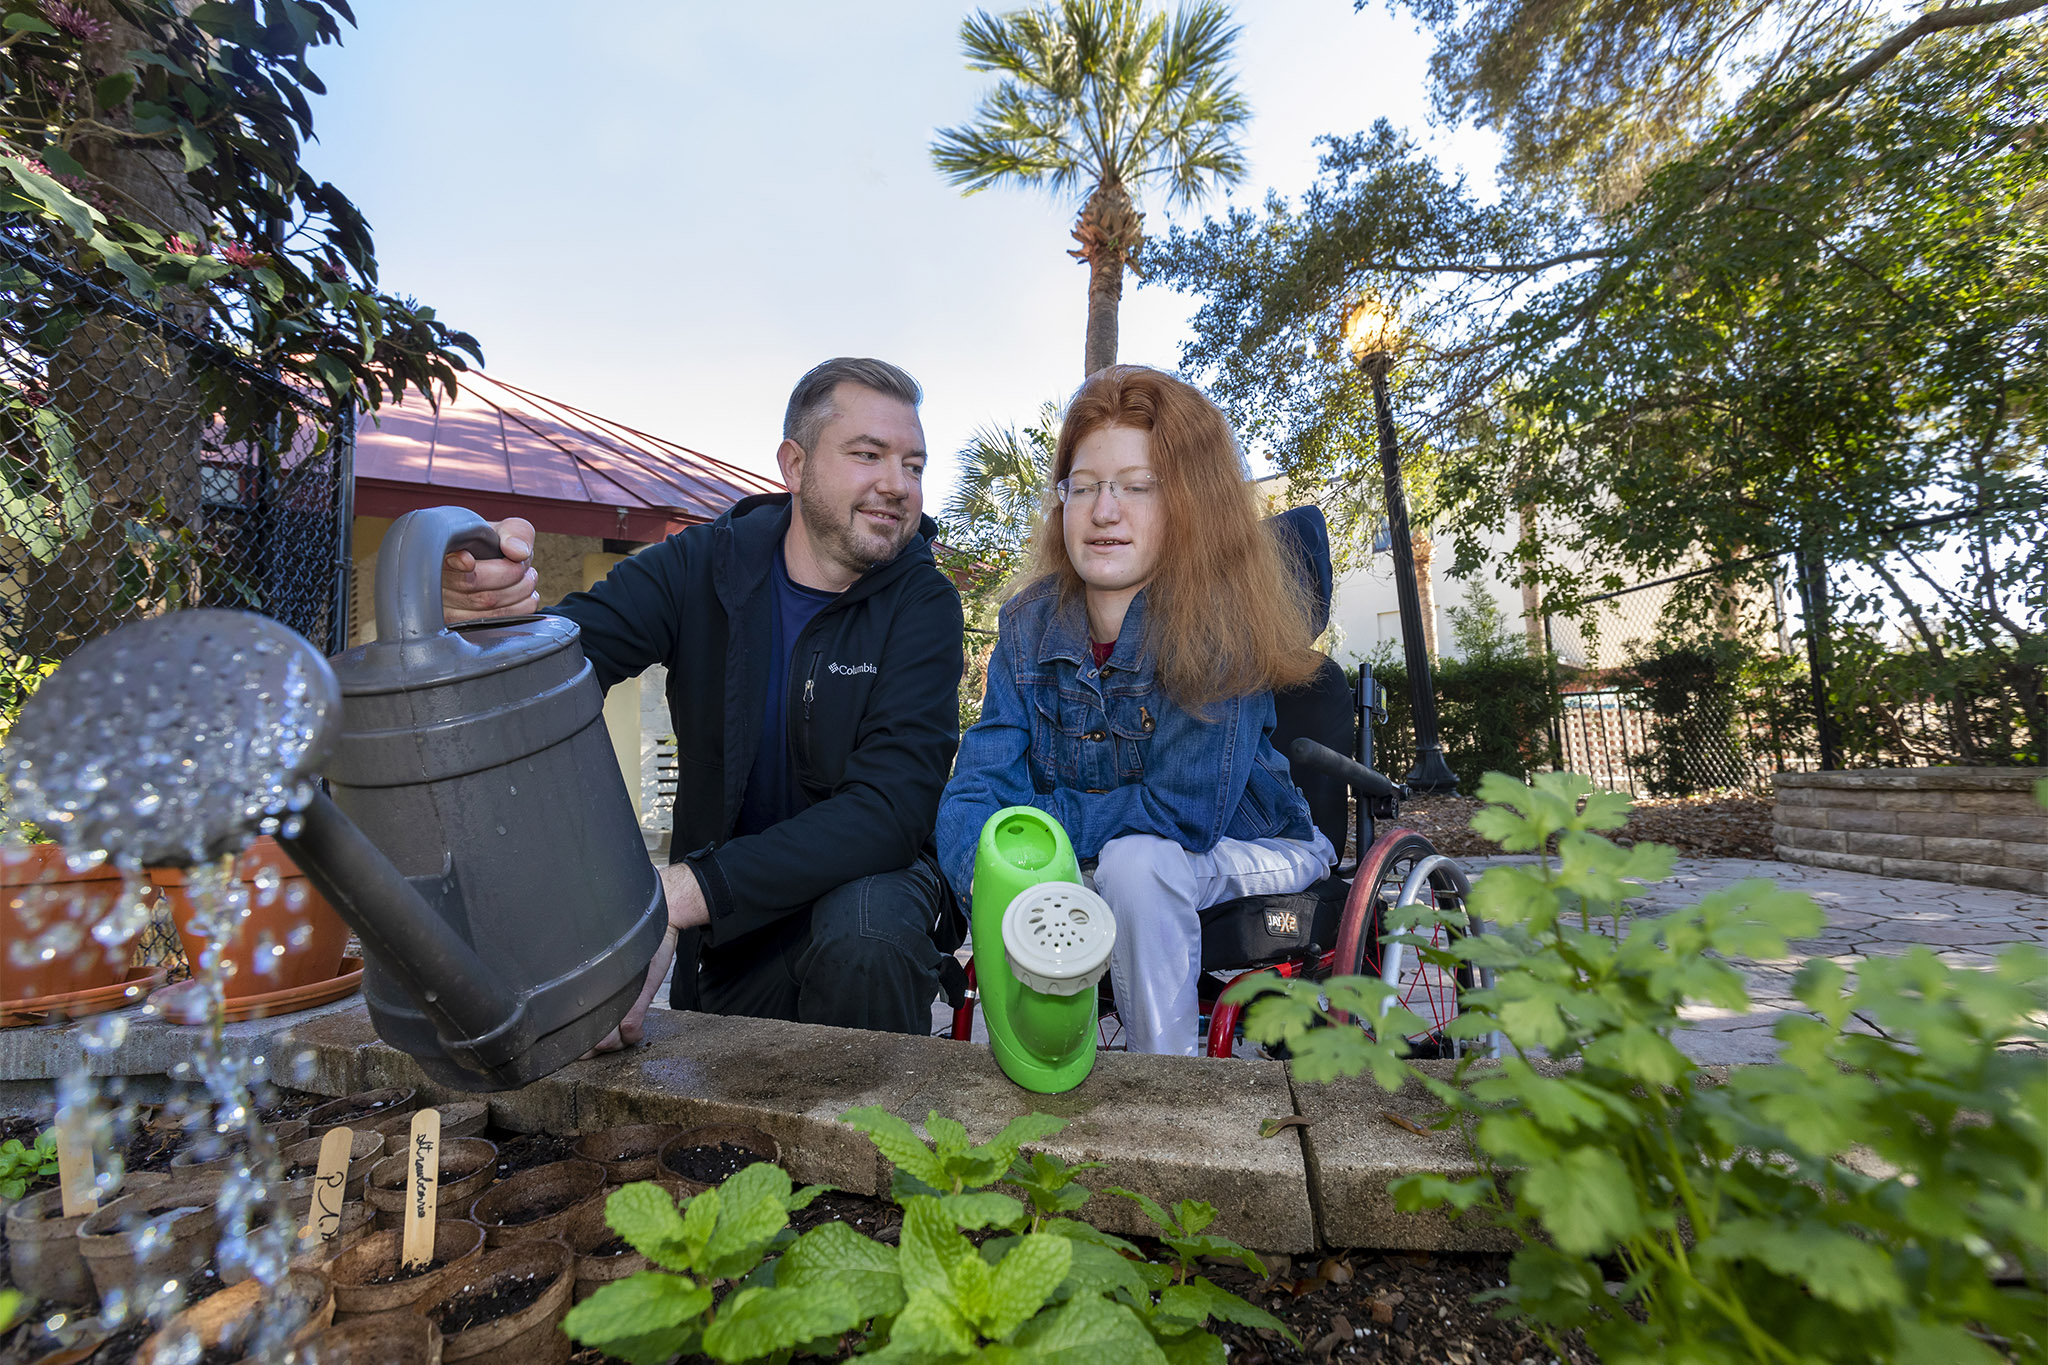 13-year-old Kelly and her therapist Nick Hamilton, are bringing this small garden at the hospital's therapy playground back to life.